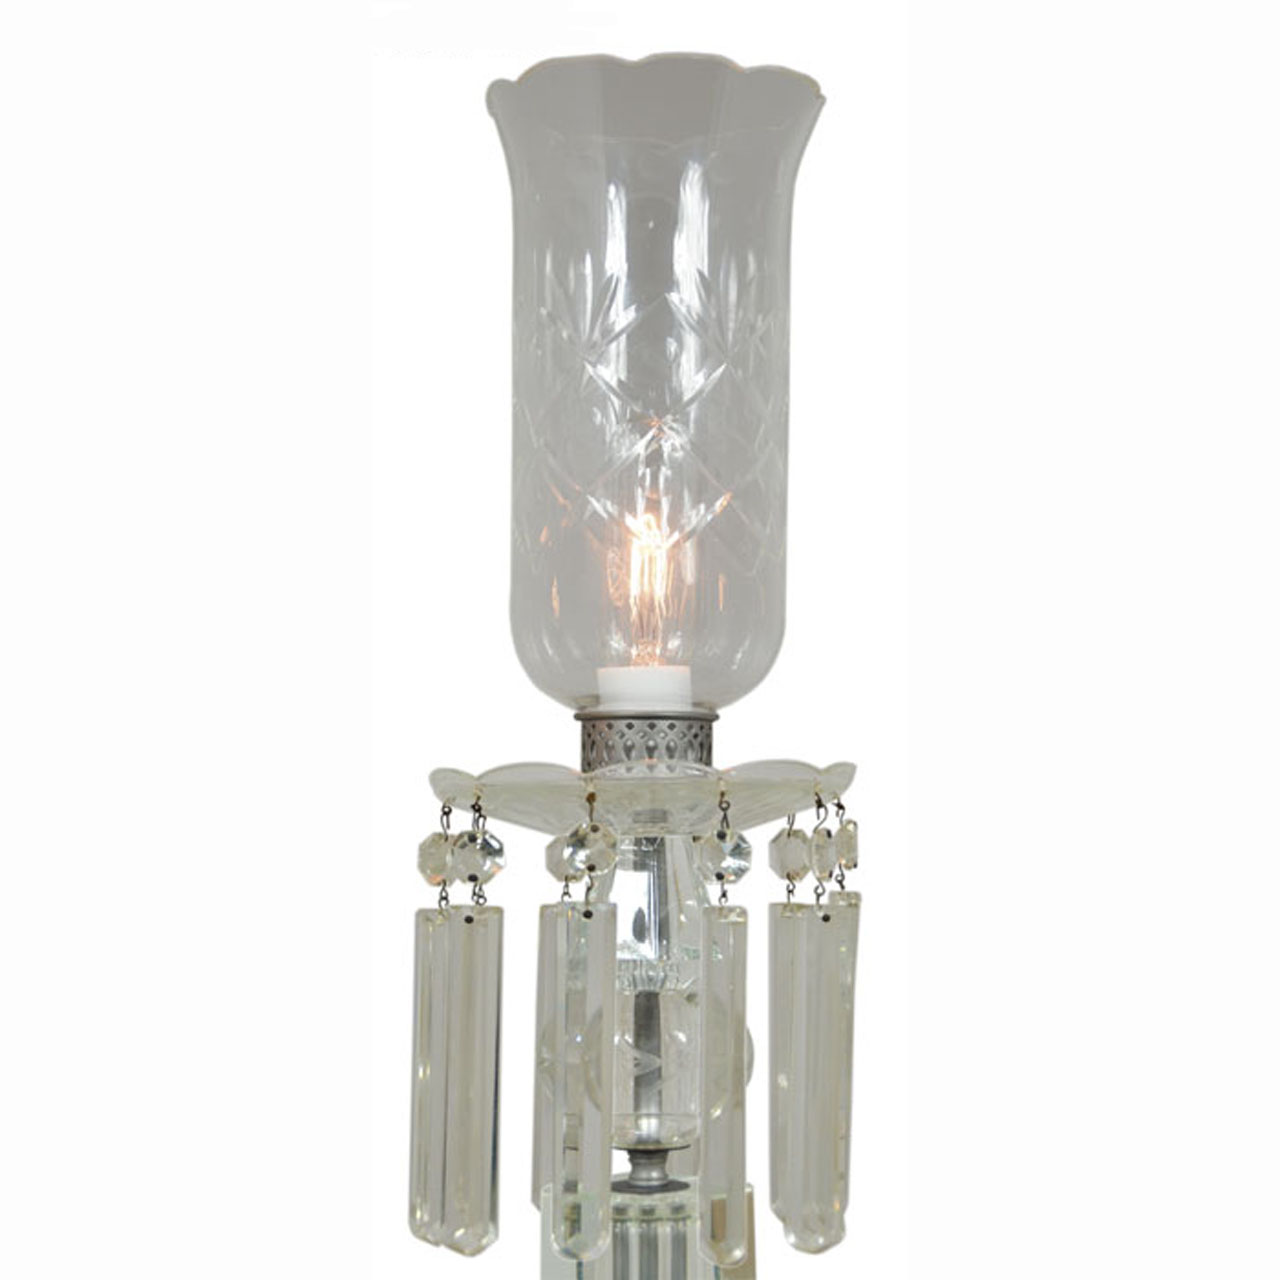 Crystal Chandelier Table Lamps For Sale: Outstanding Pair Of Period Edwardian Cut Crystal Hurricane